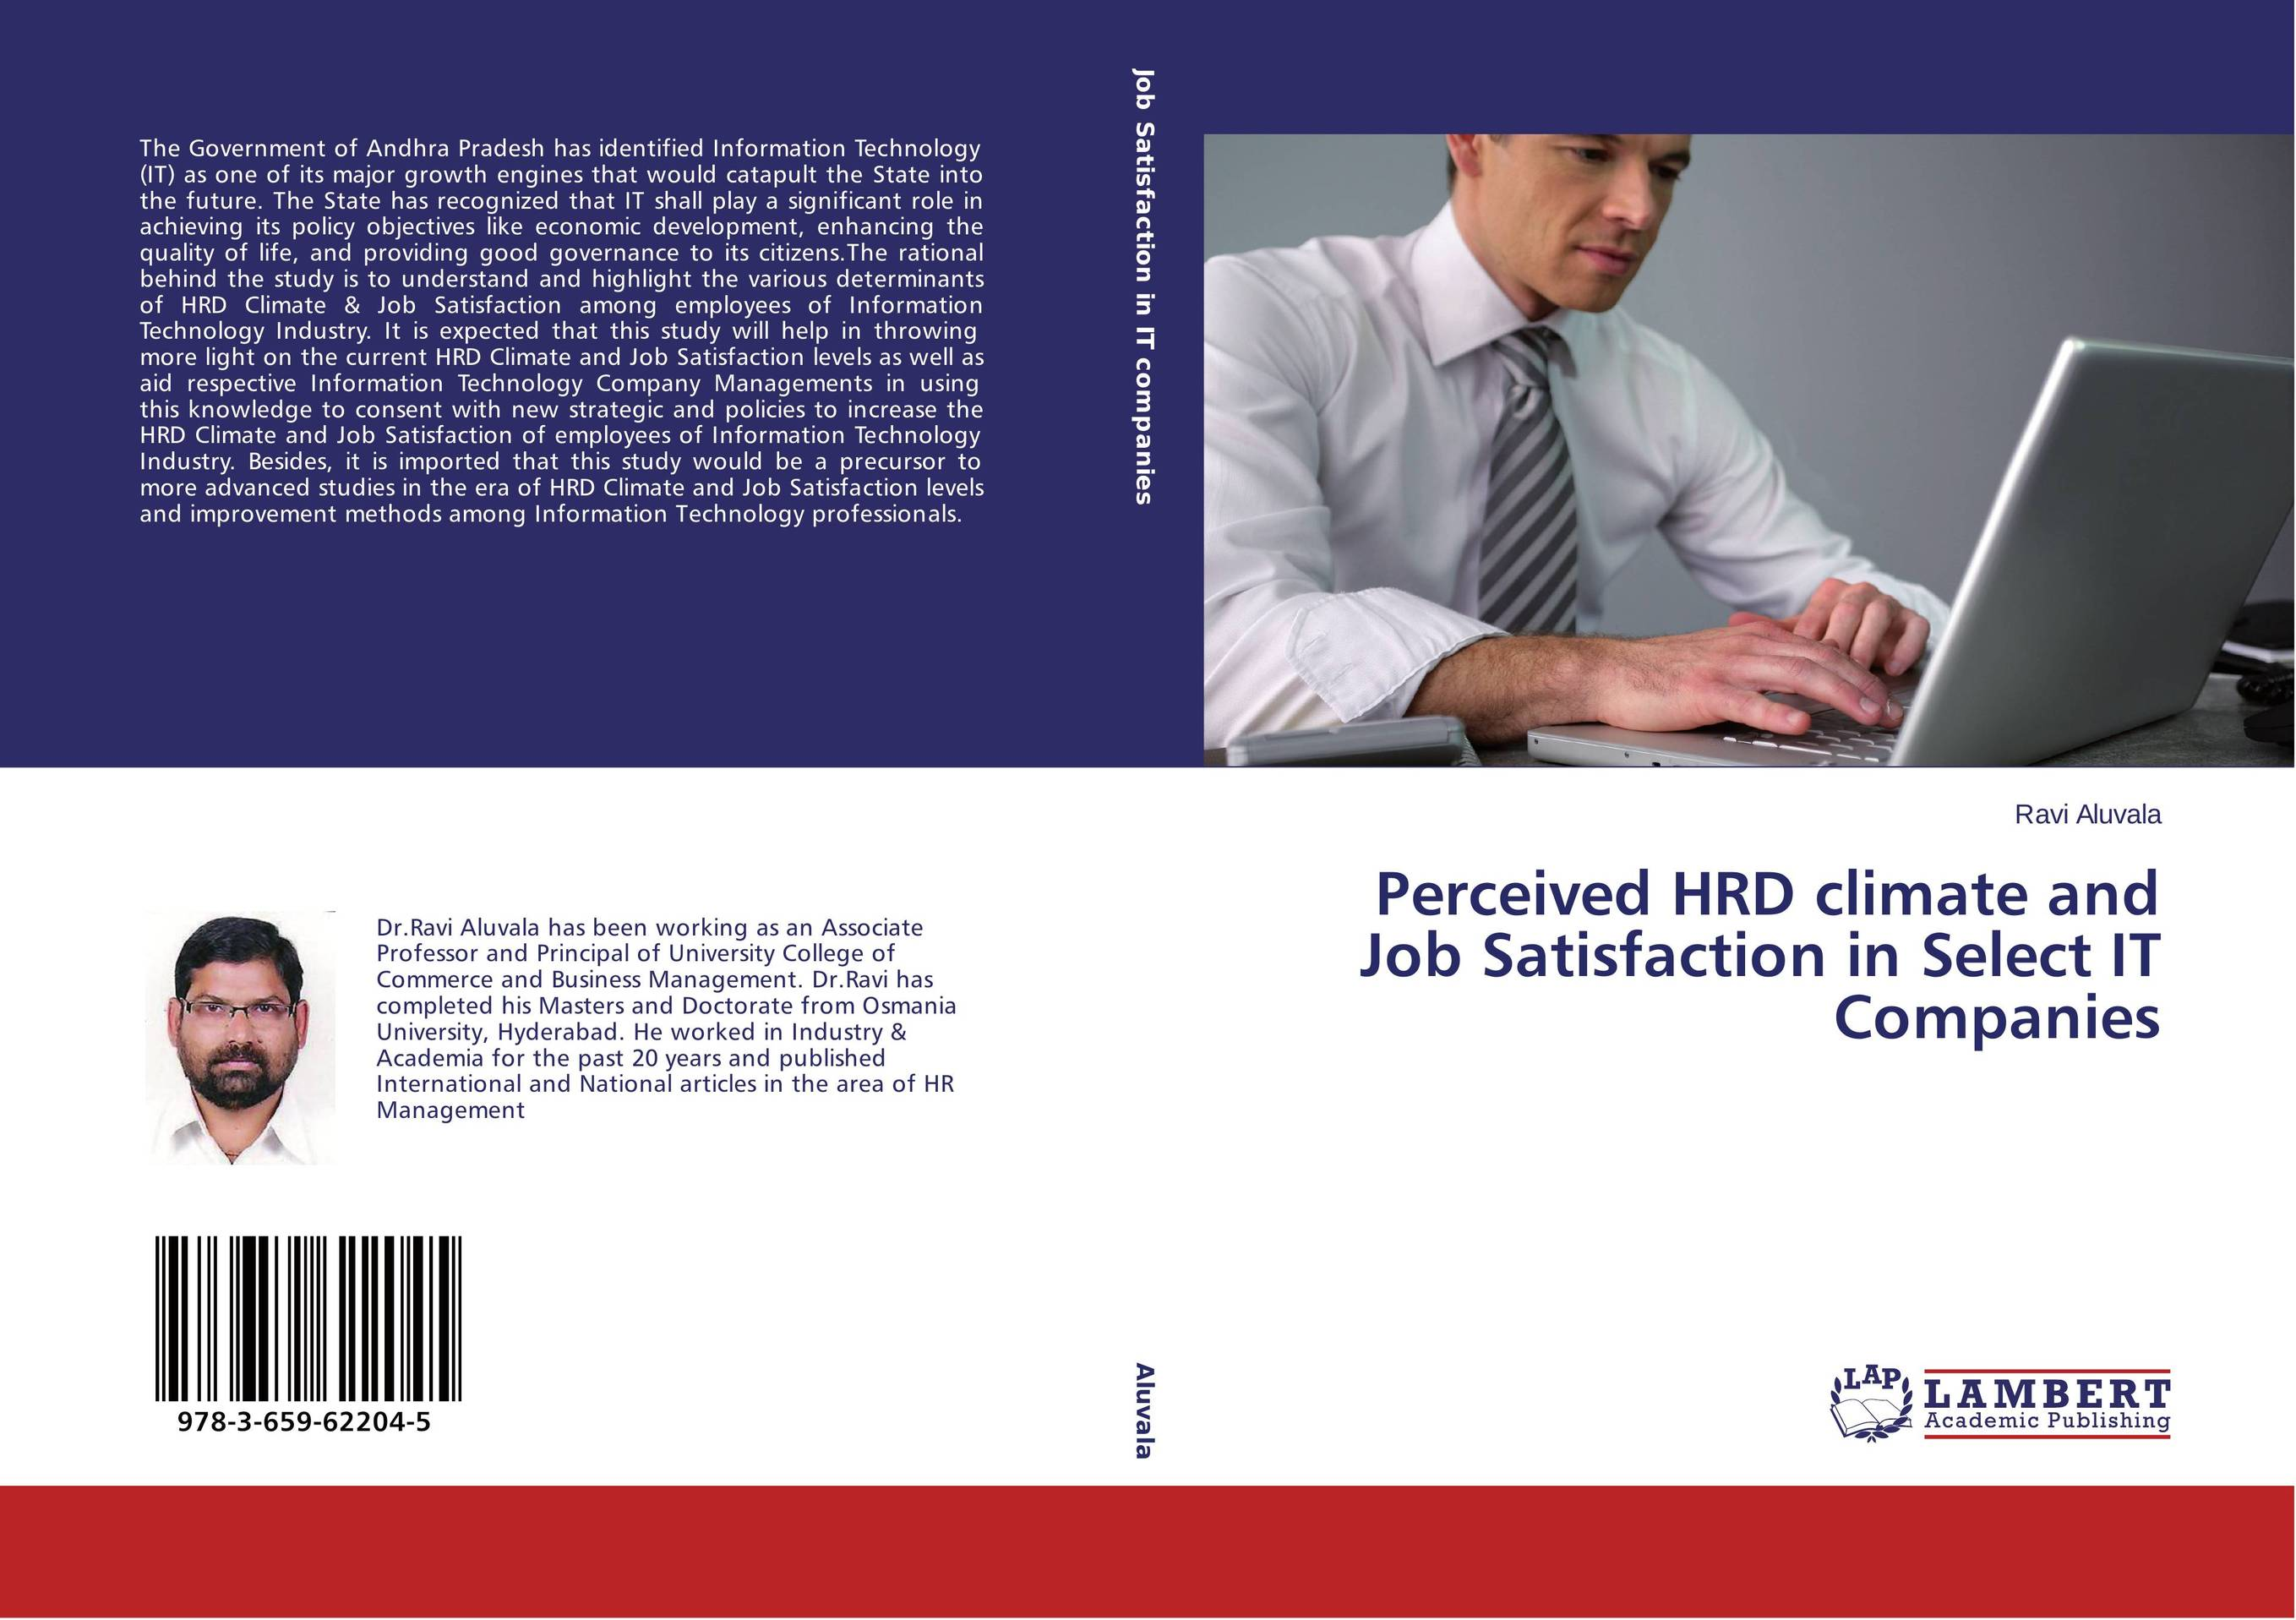 hrd culture and climate Hrd climate has three dimensions of (tv rao and e abraham) - general climate, octapac culture and implementation of hrd mechanisms the general climate deals with the importance given to human resources development in general by the top management and line managers.